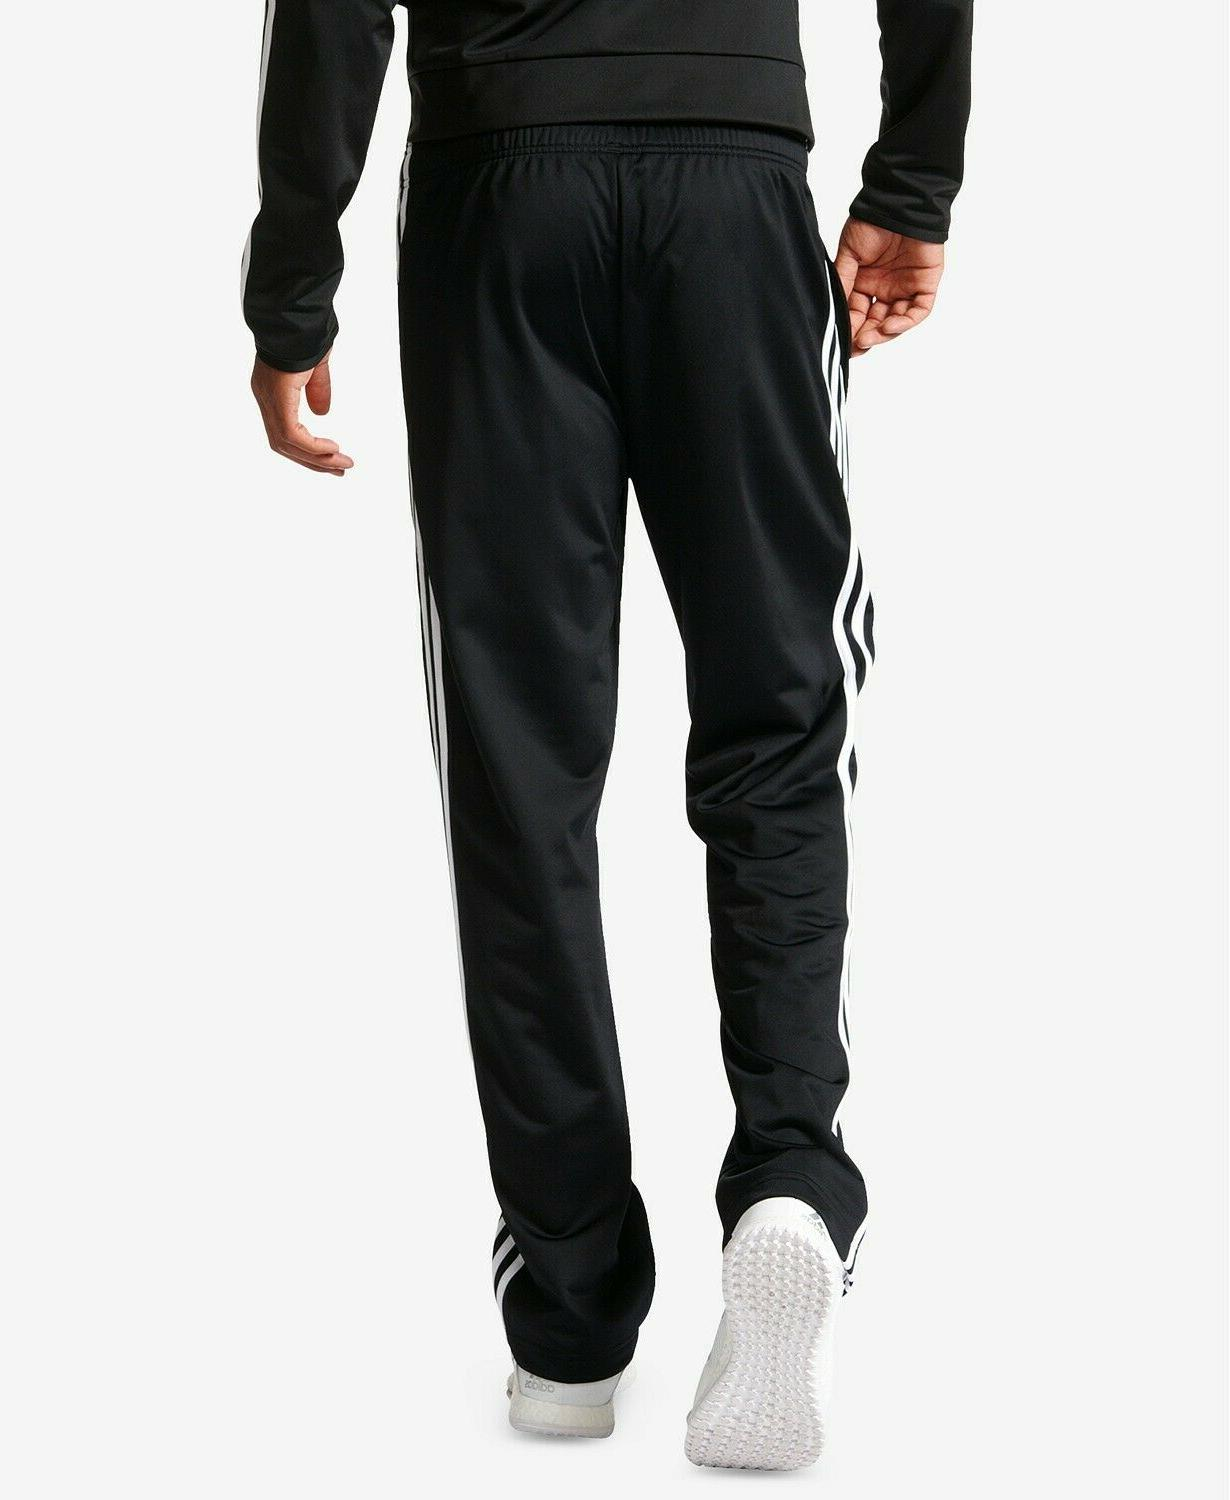 Adidas Pants Men's White Training Running